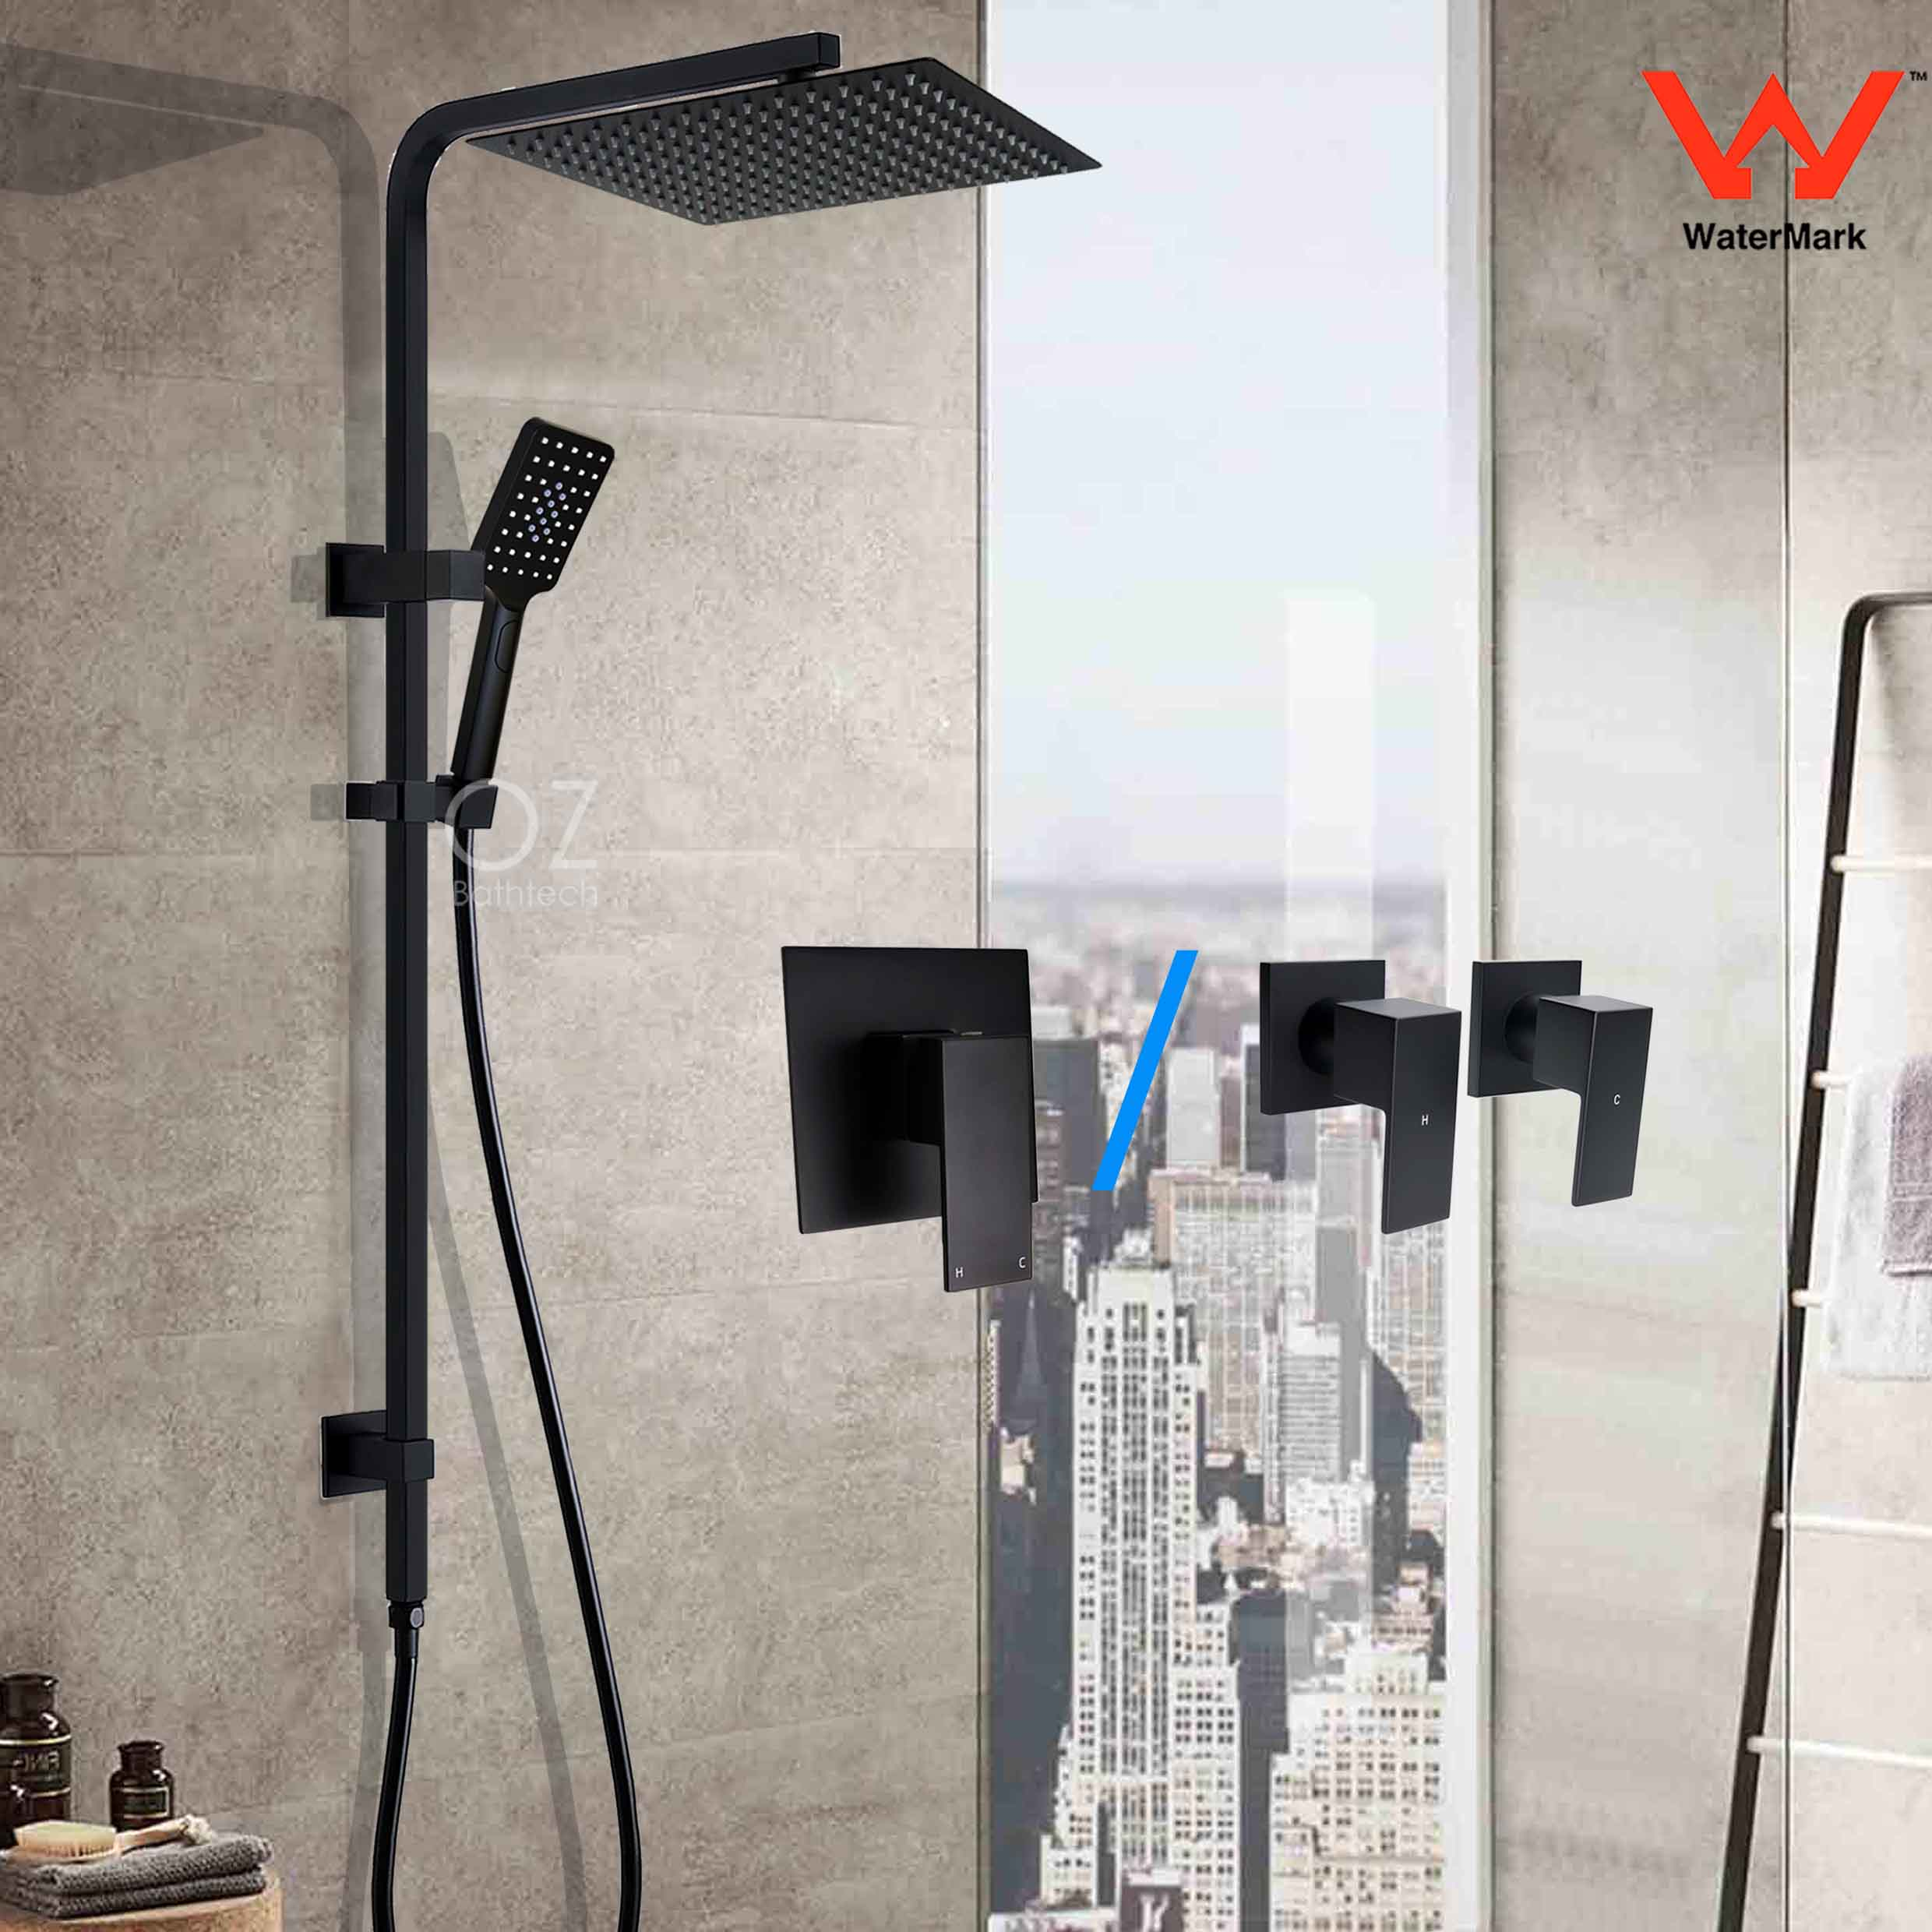 Wels 7.5L//min Twin Shower Head 3 Function Hand Held Rail Wall Arm Black Mixer